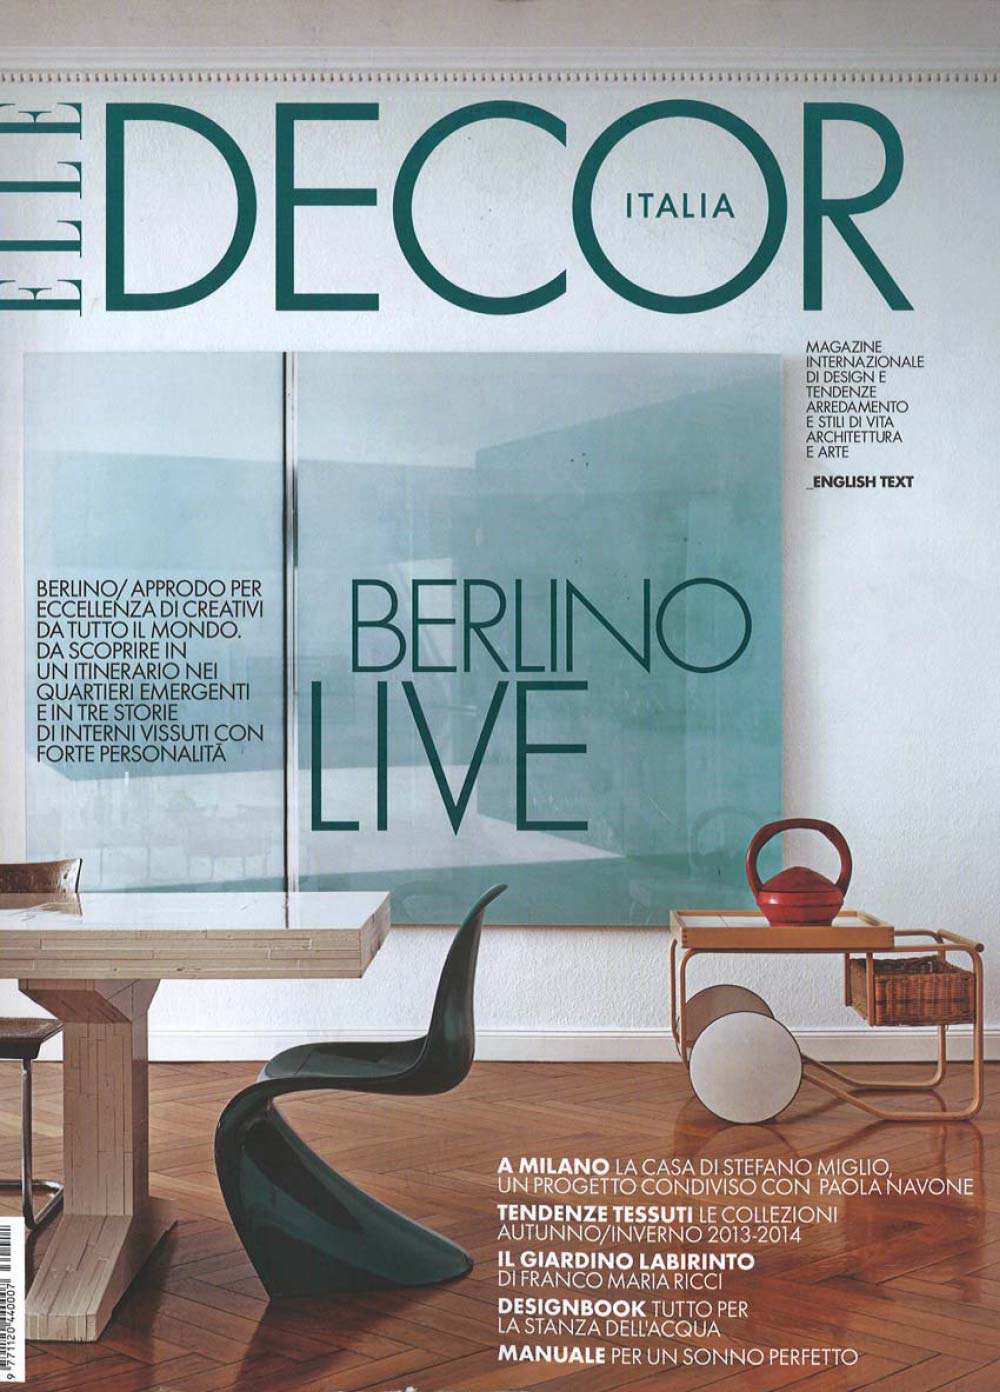 elle-decor_nov-2013_low